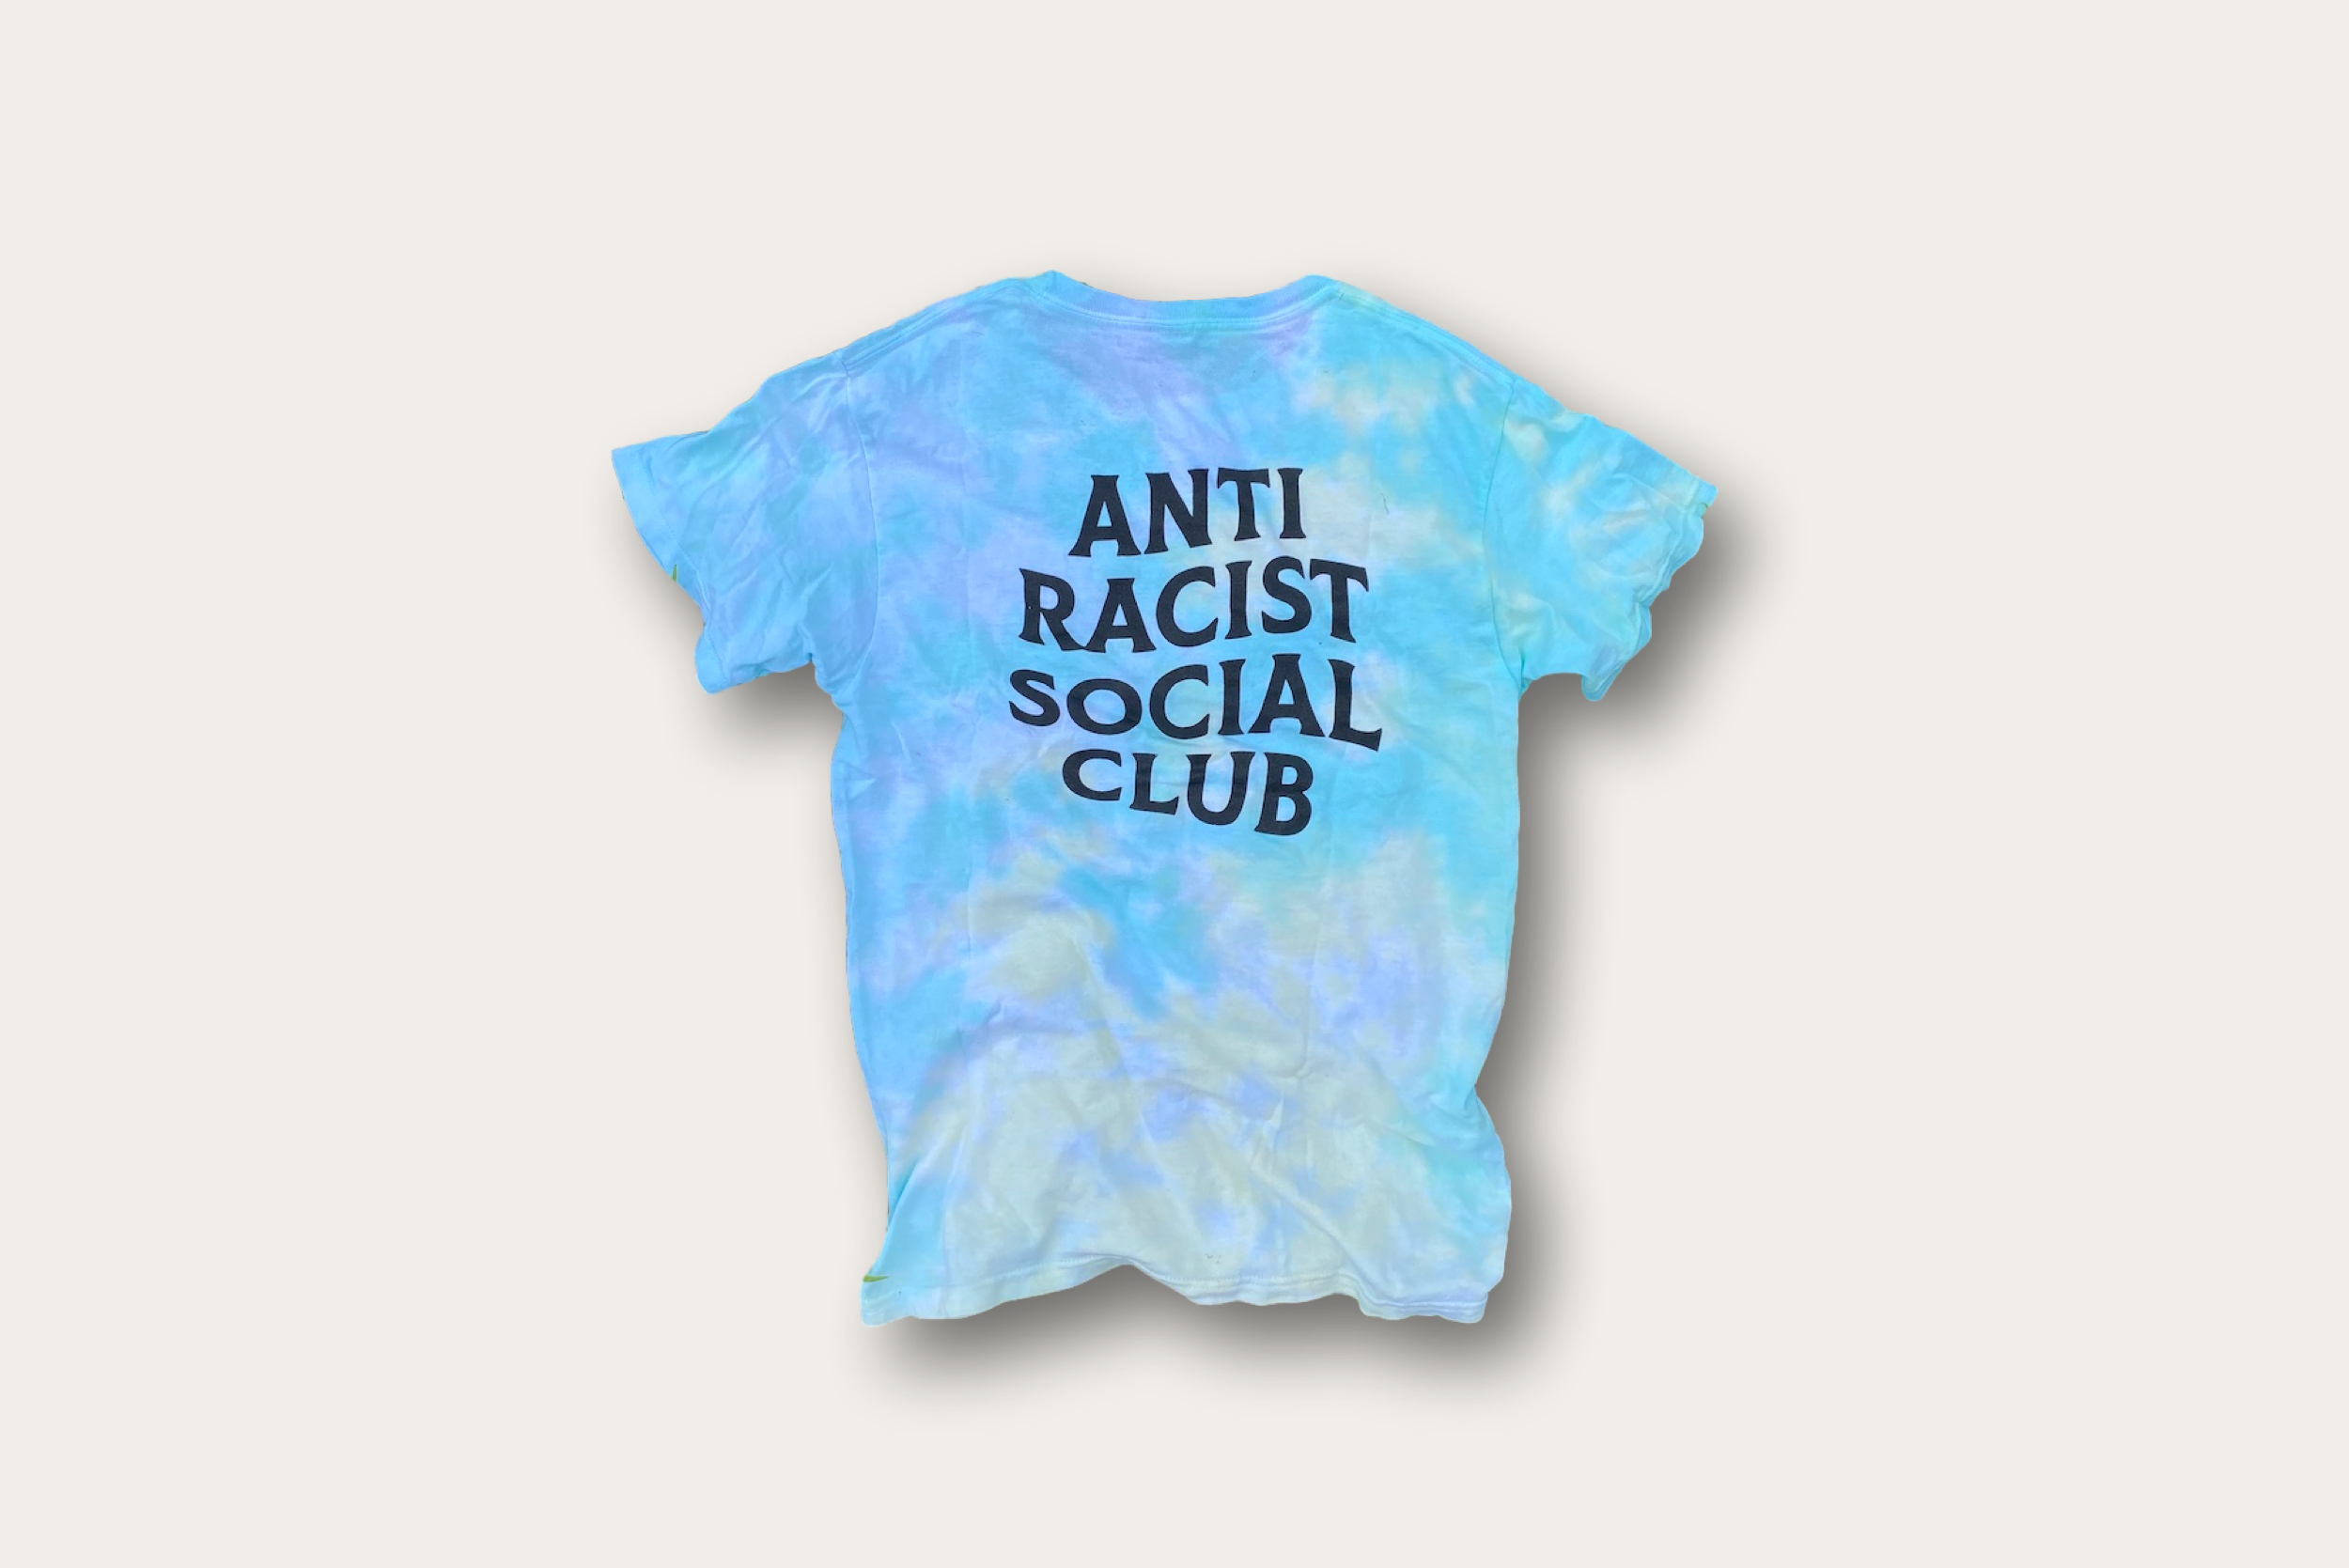 anti racist social club tee